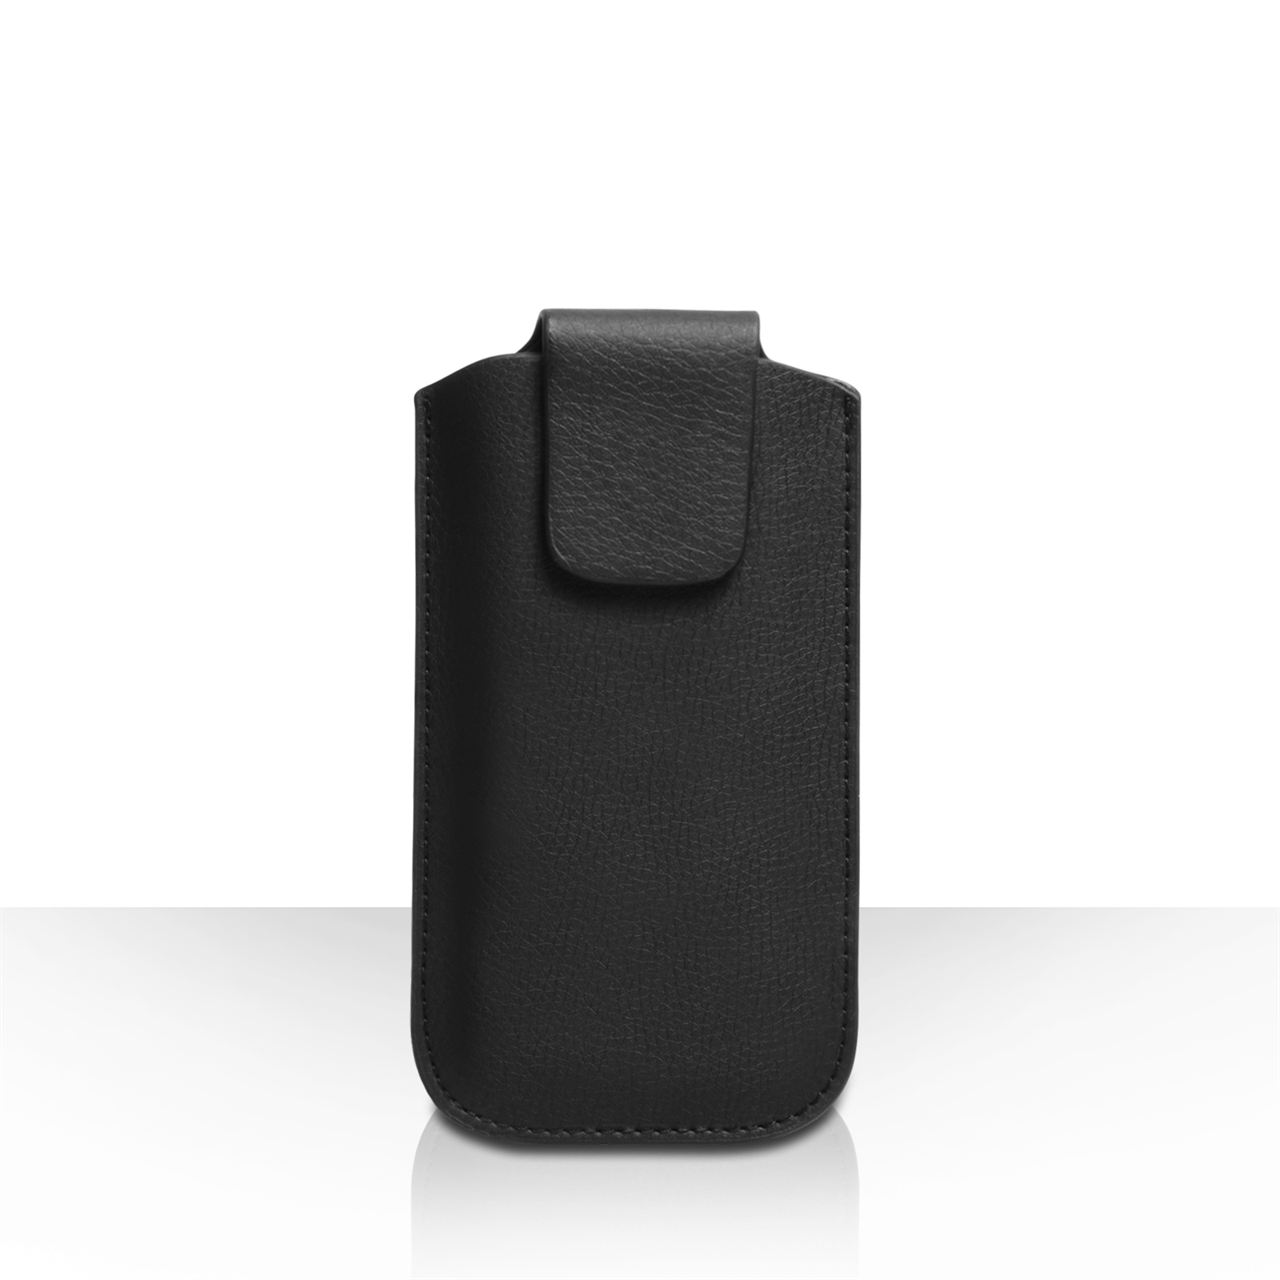 Caseflex Small Textured Faux Leather Phone Pouch - Black